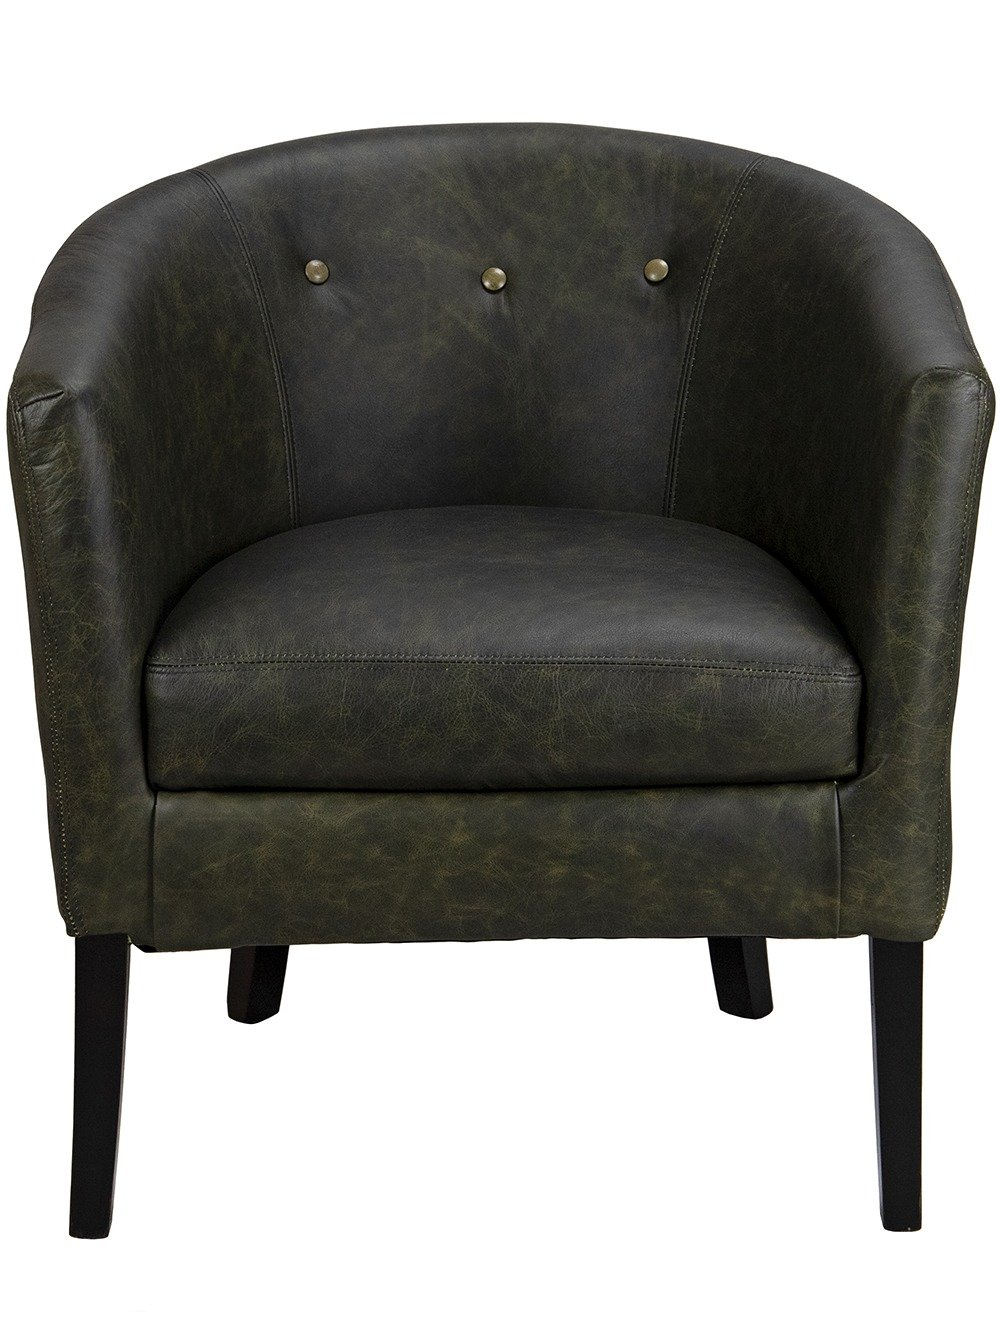 Ambassador Tub Chair with shallow button detail from the front